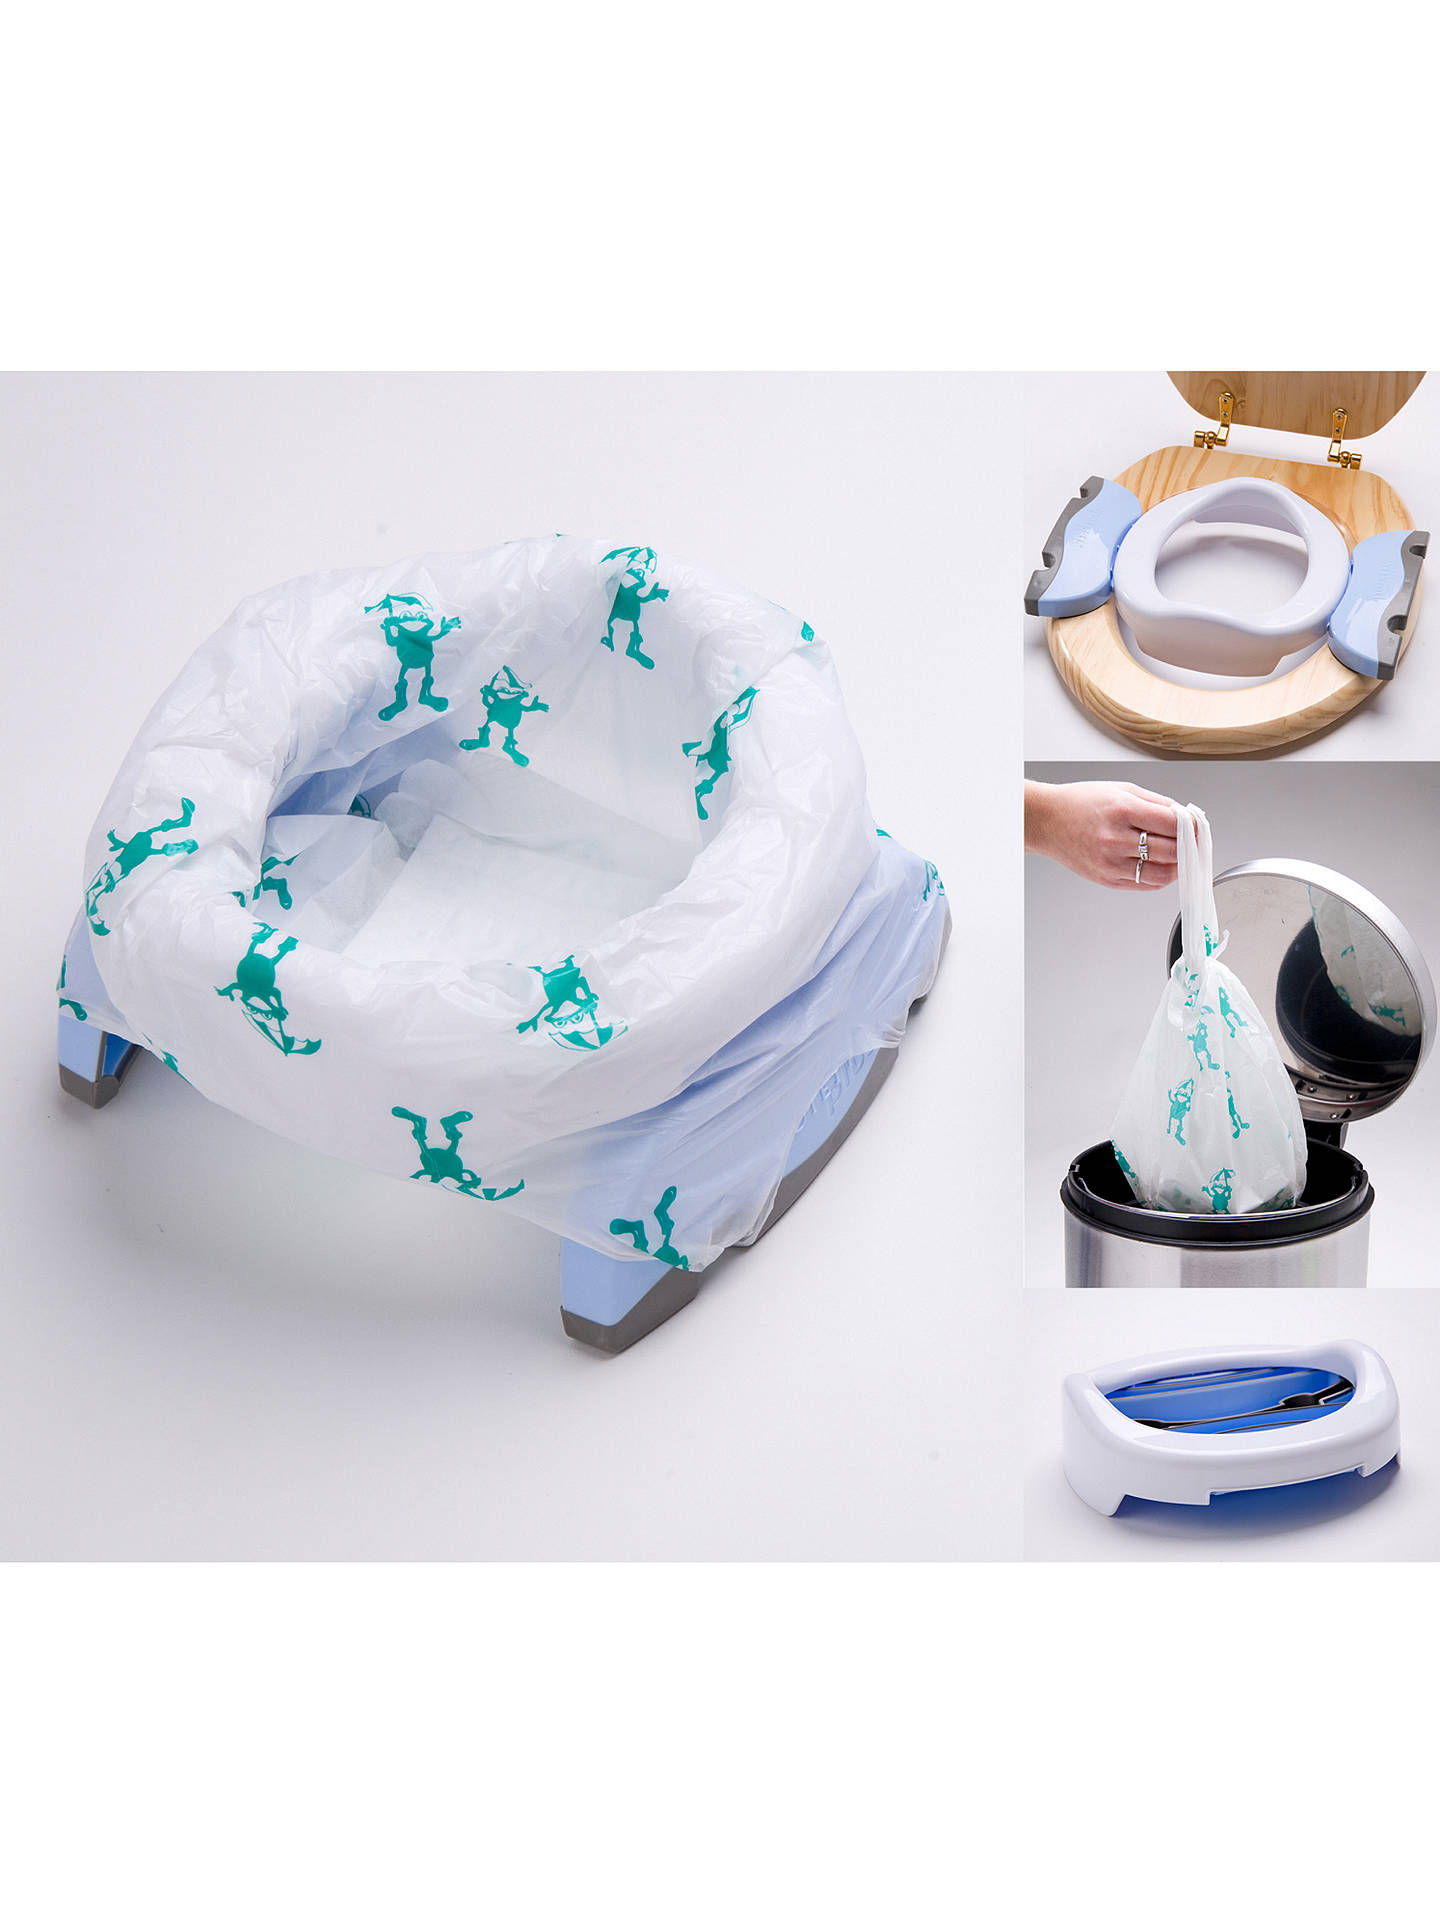 BuyPotette Plus Convertible Travel Potty, White/Blue Online at johnlewis.com